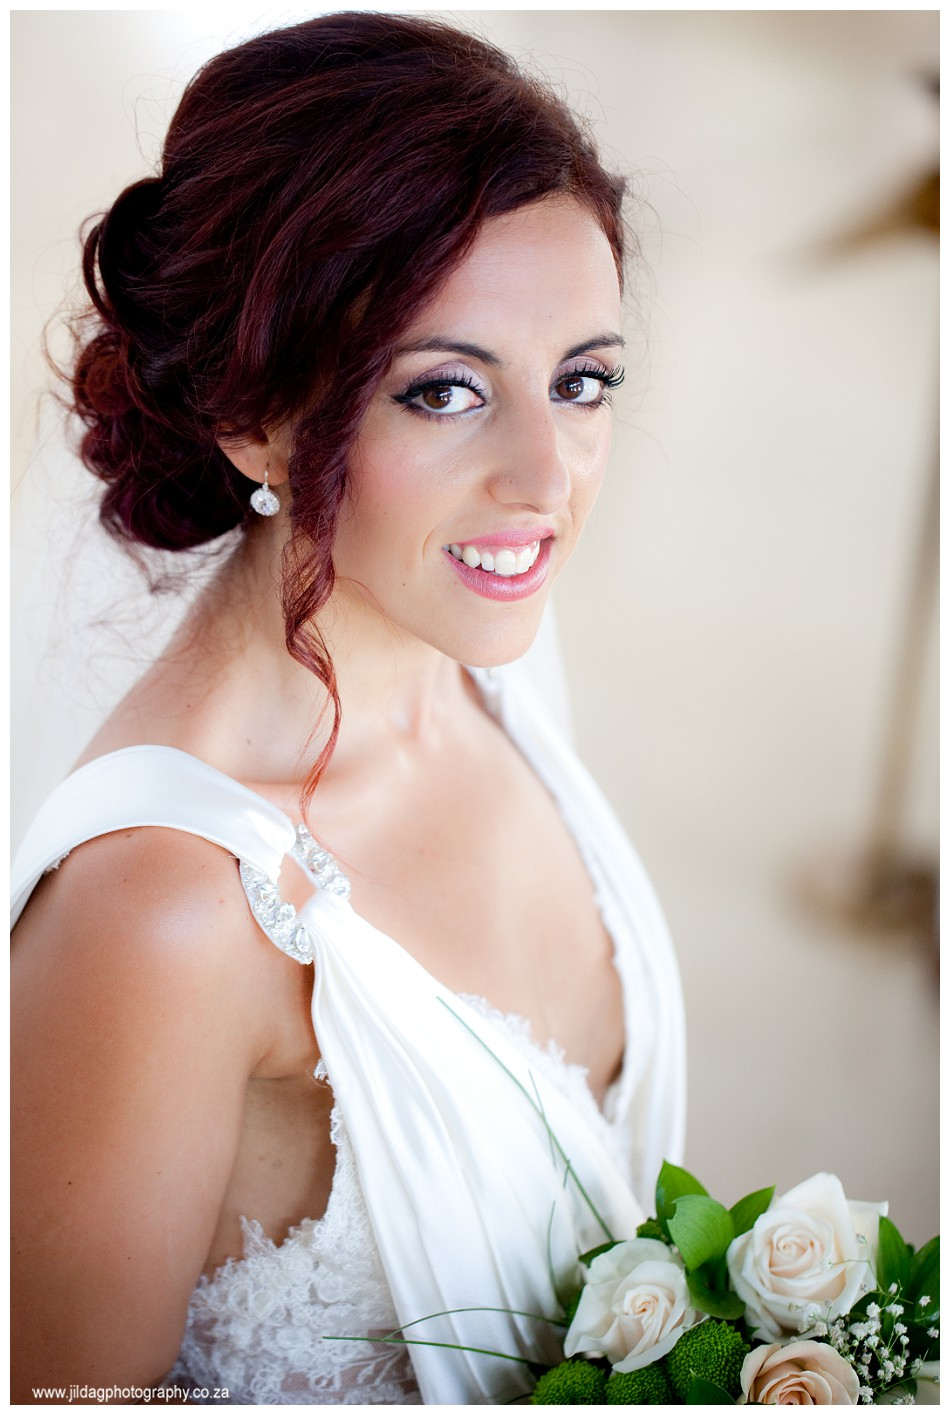 Destination wedding, Madeira, Portugal wedding, Jilda G Photography (26)